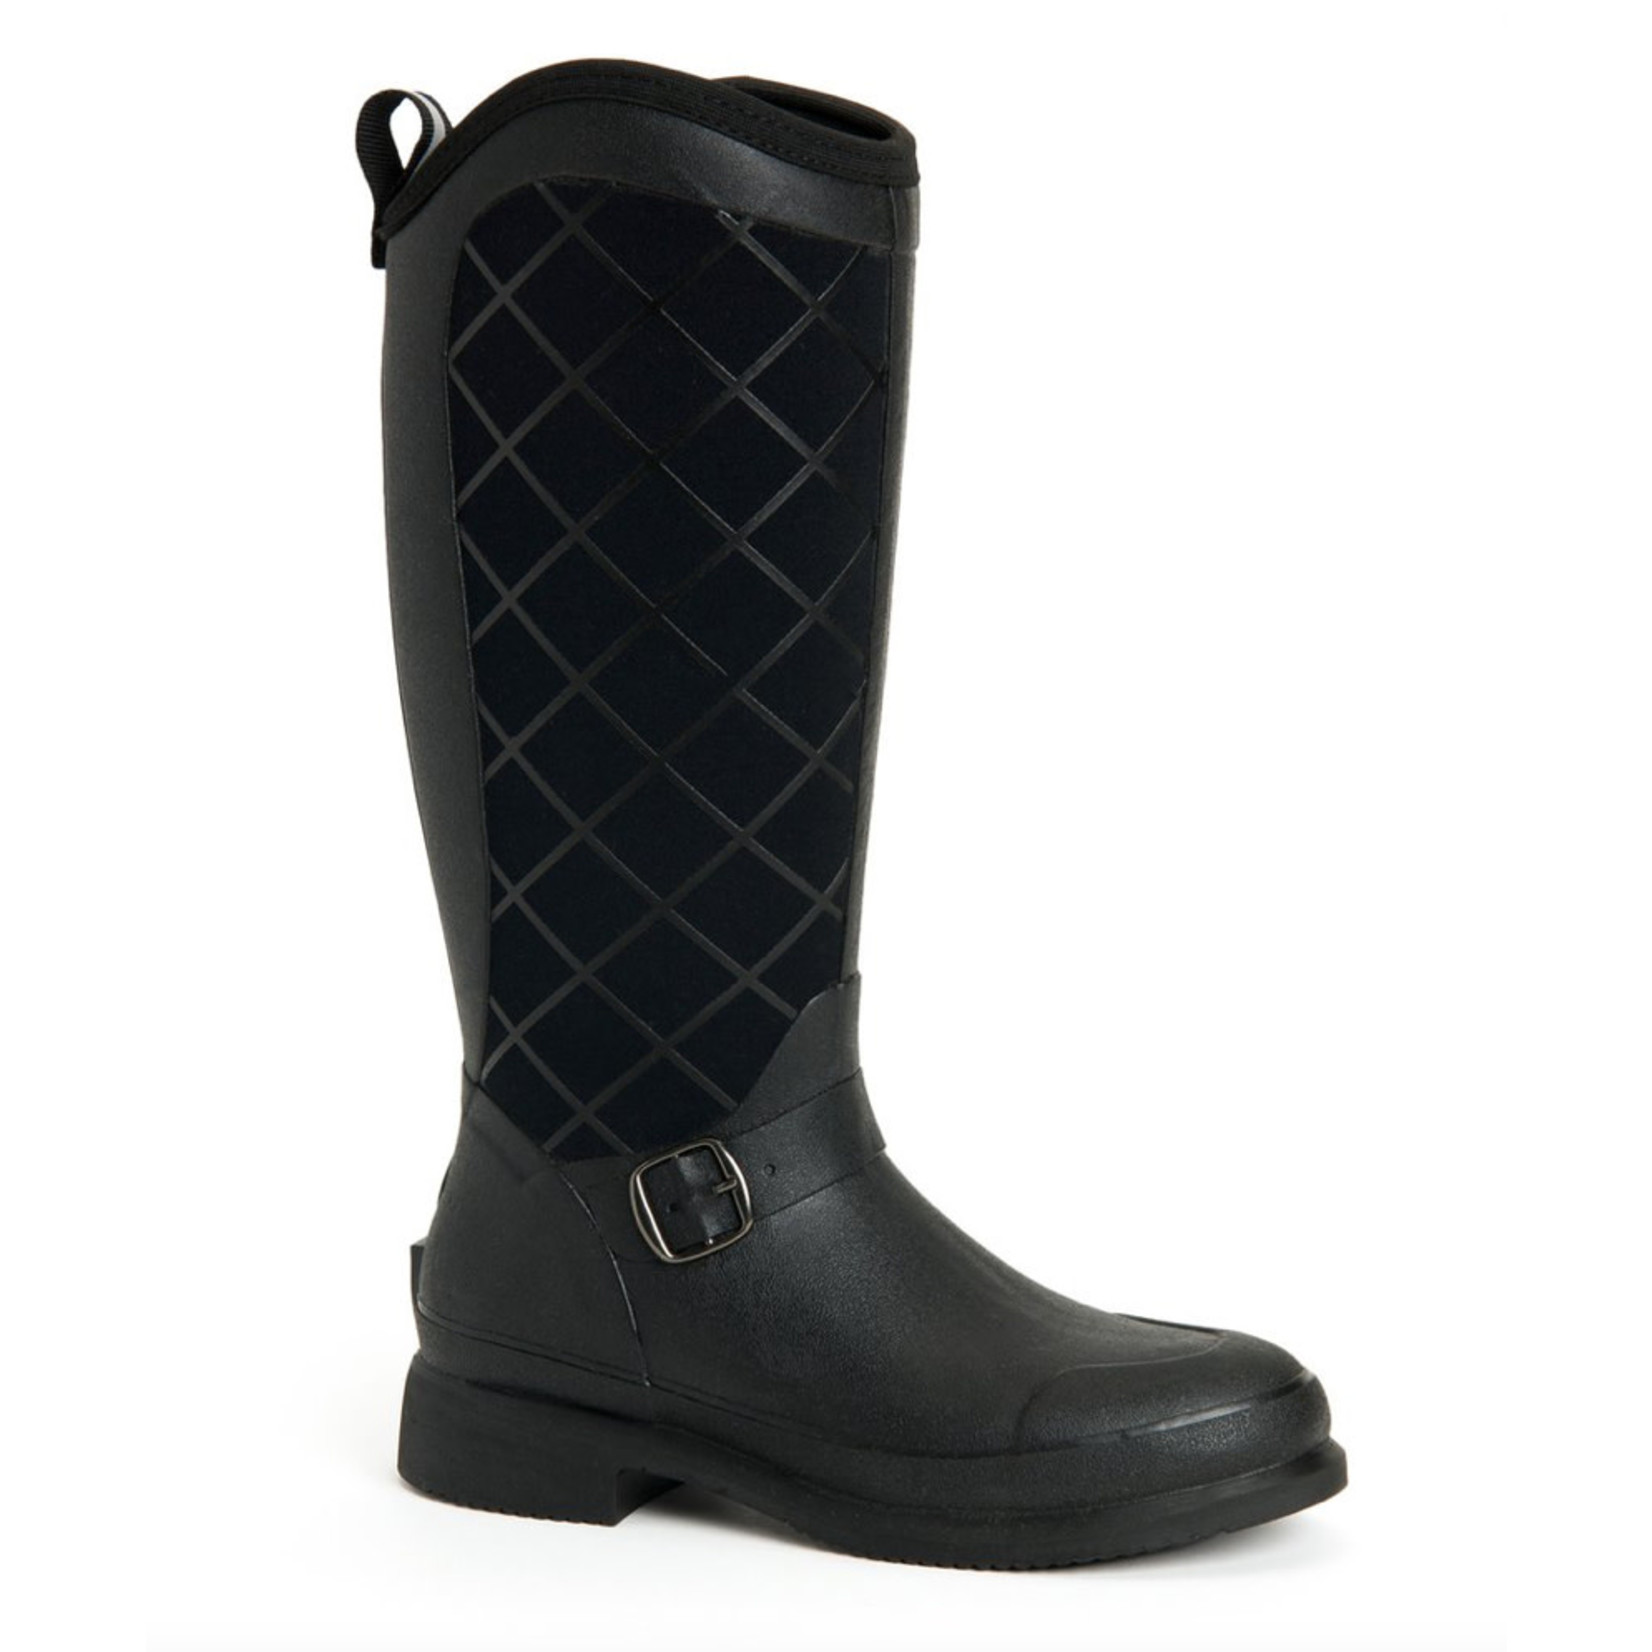 Muck Muck Pacy II All Condition Riding Boots 100% Waterproof PCY-000